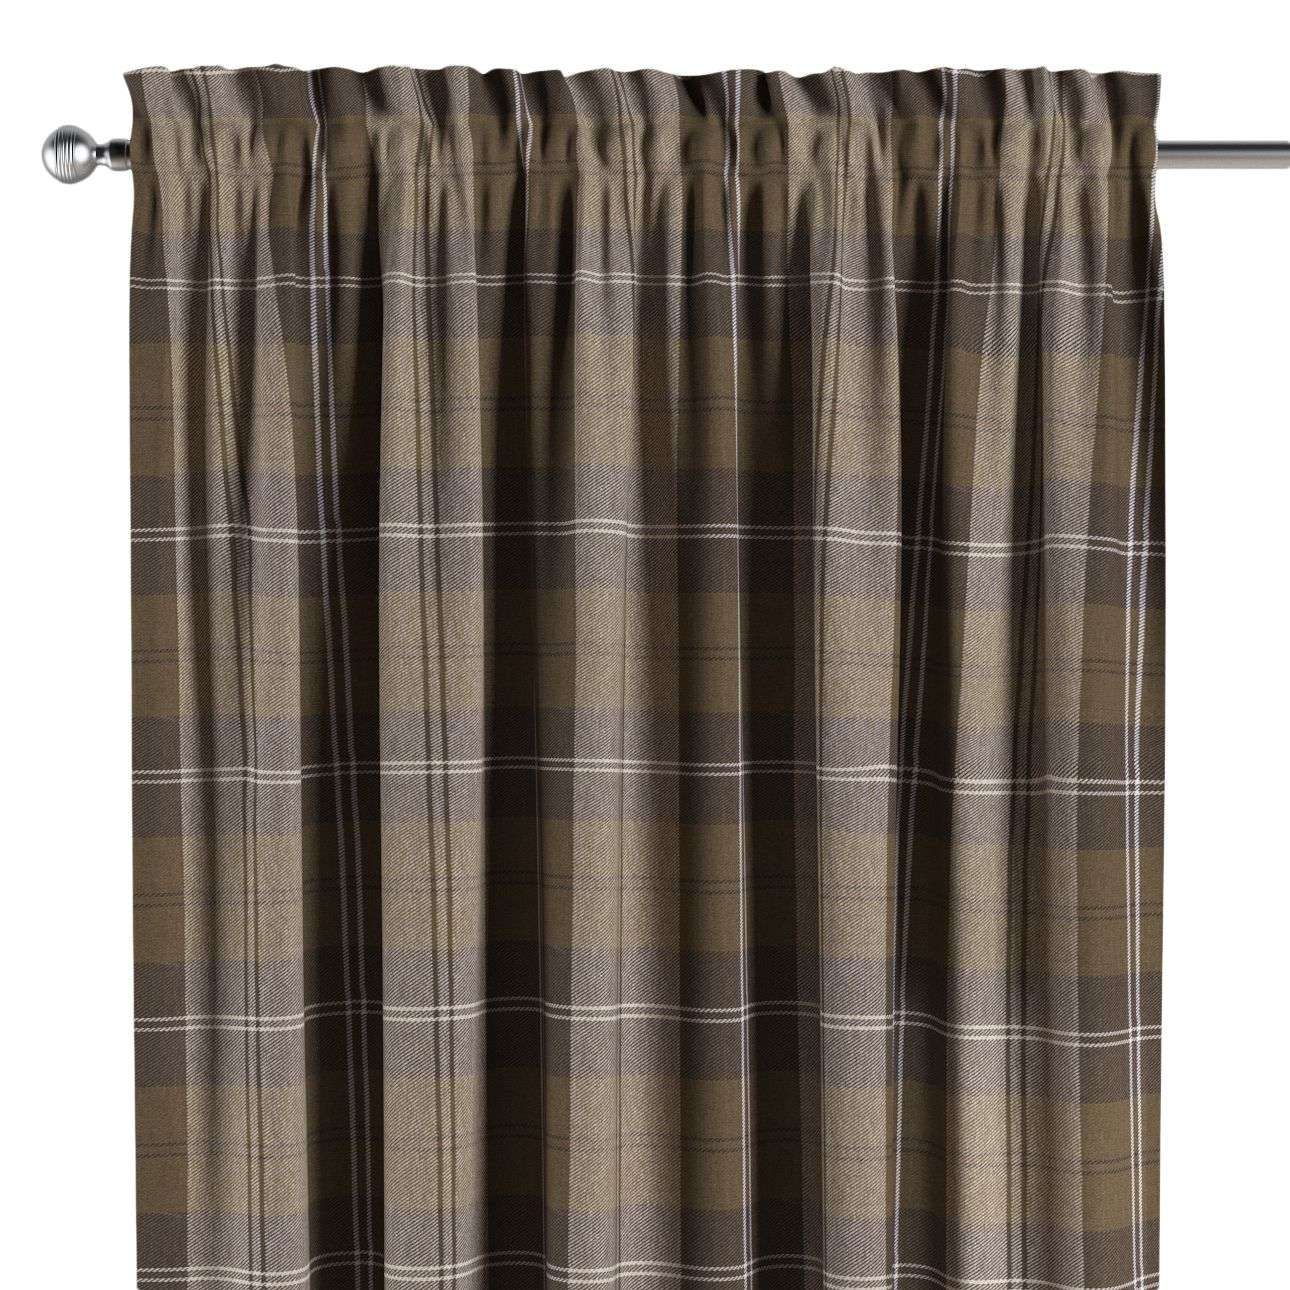 Slot and frill curtains 130 × 260 cm (51 × 102 inch) in collection Edinburgh, fabric: 115-76